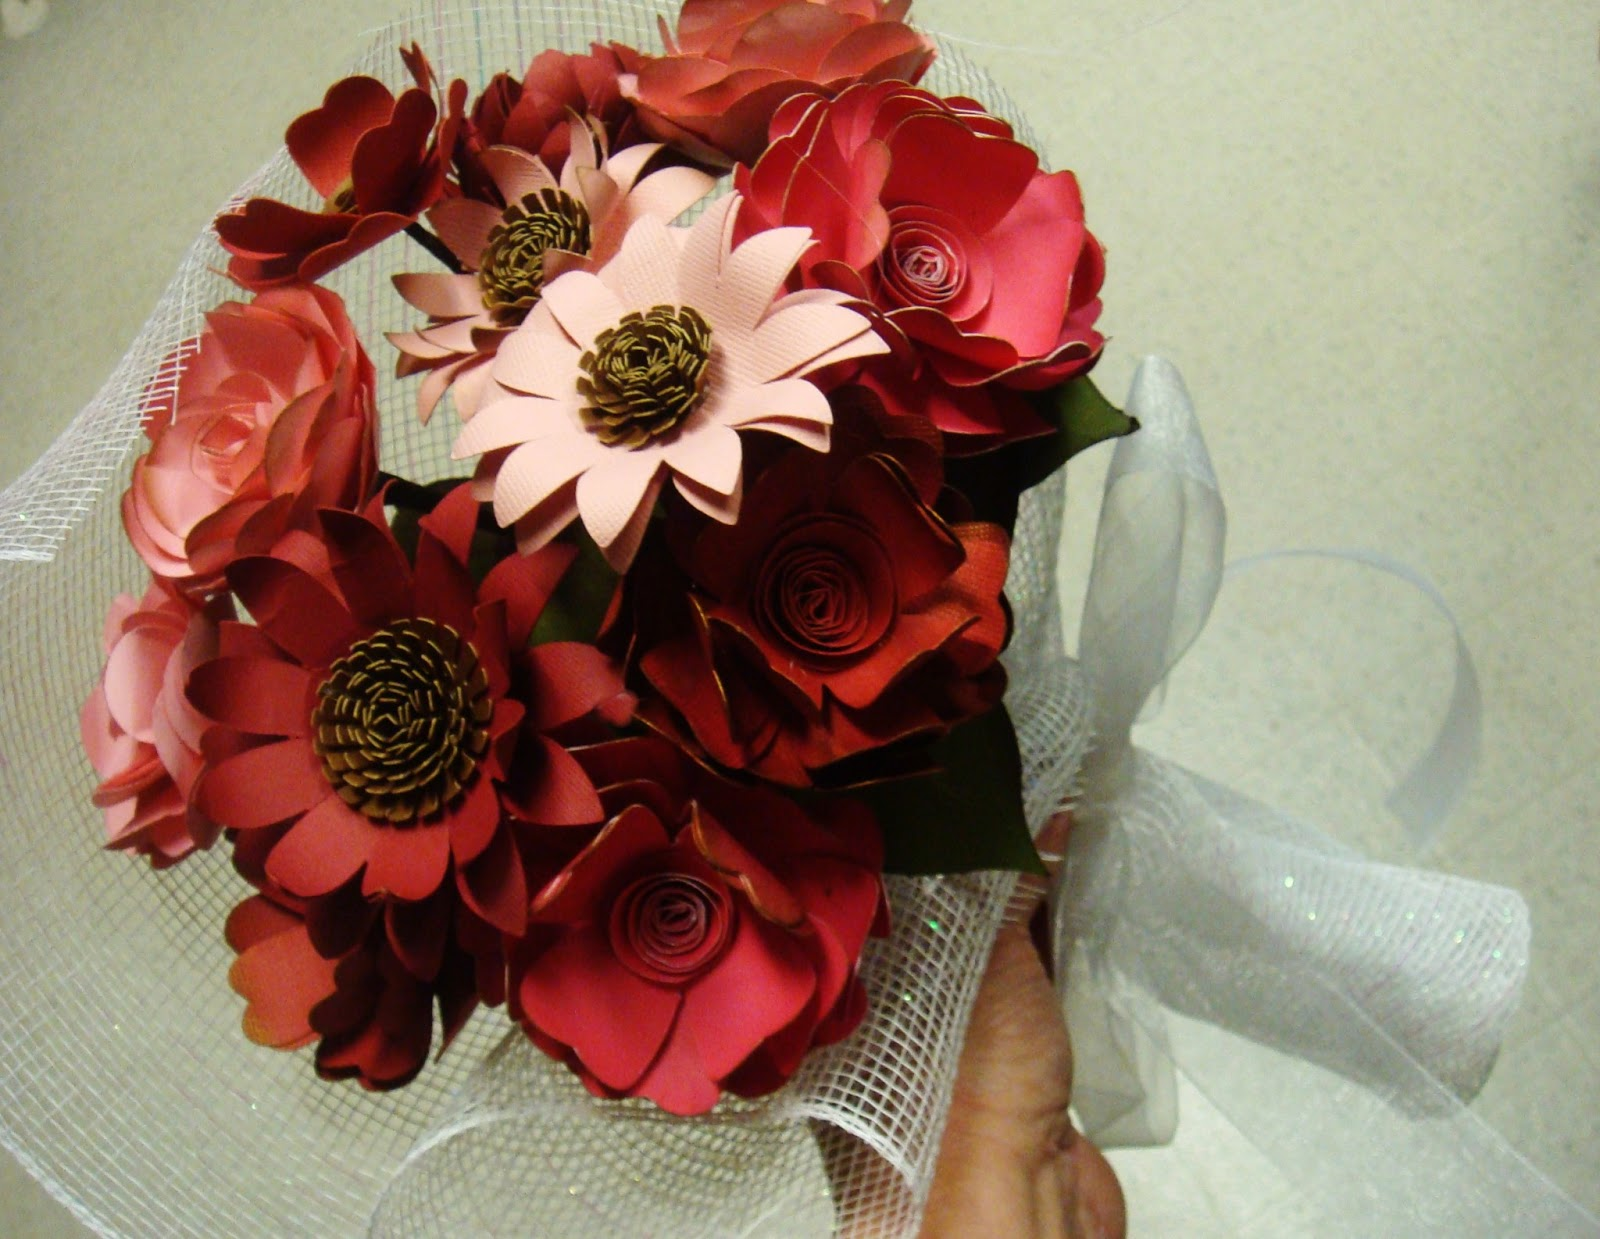 A Quick Look At My Paper Flower Wedding Favors And Escort Flowers